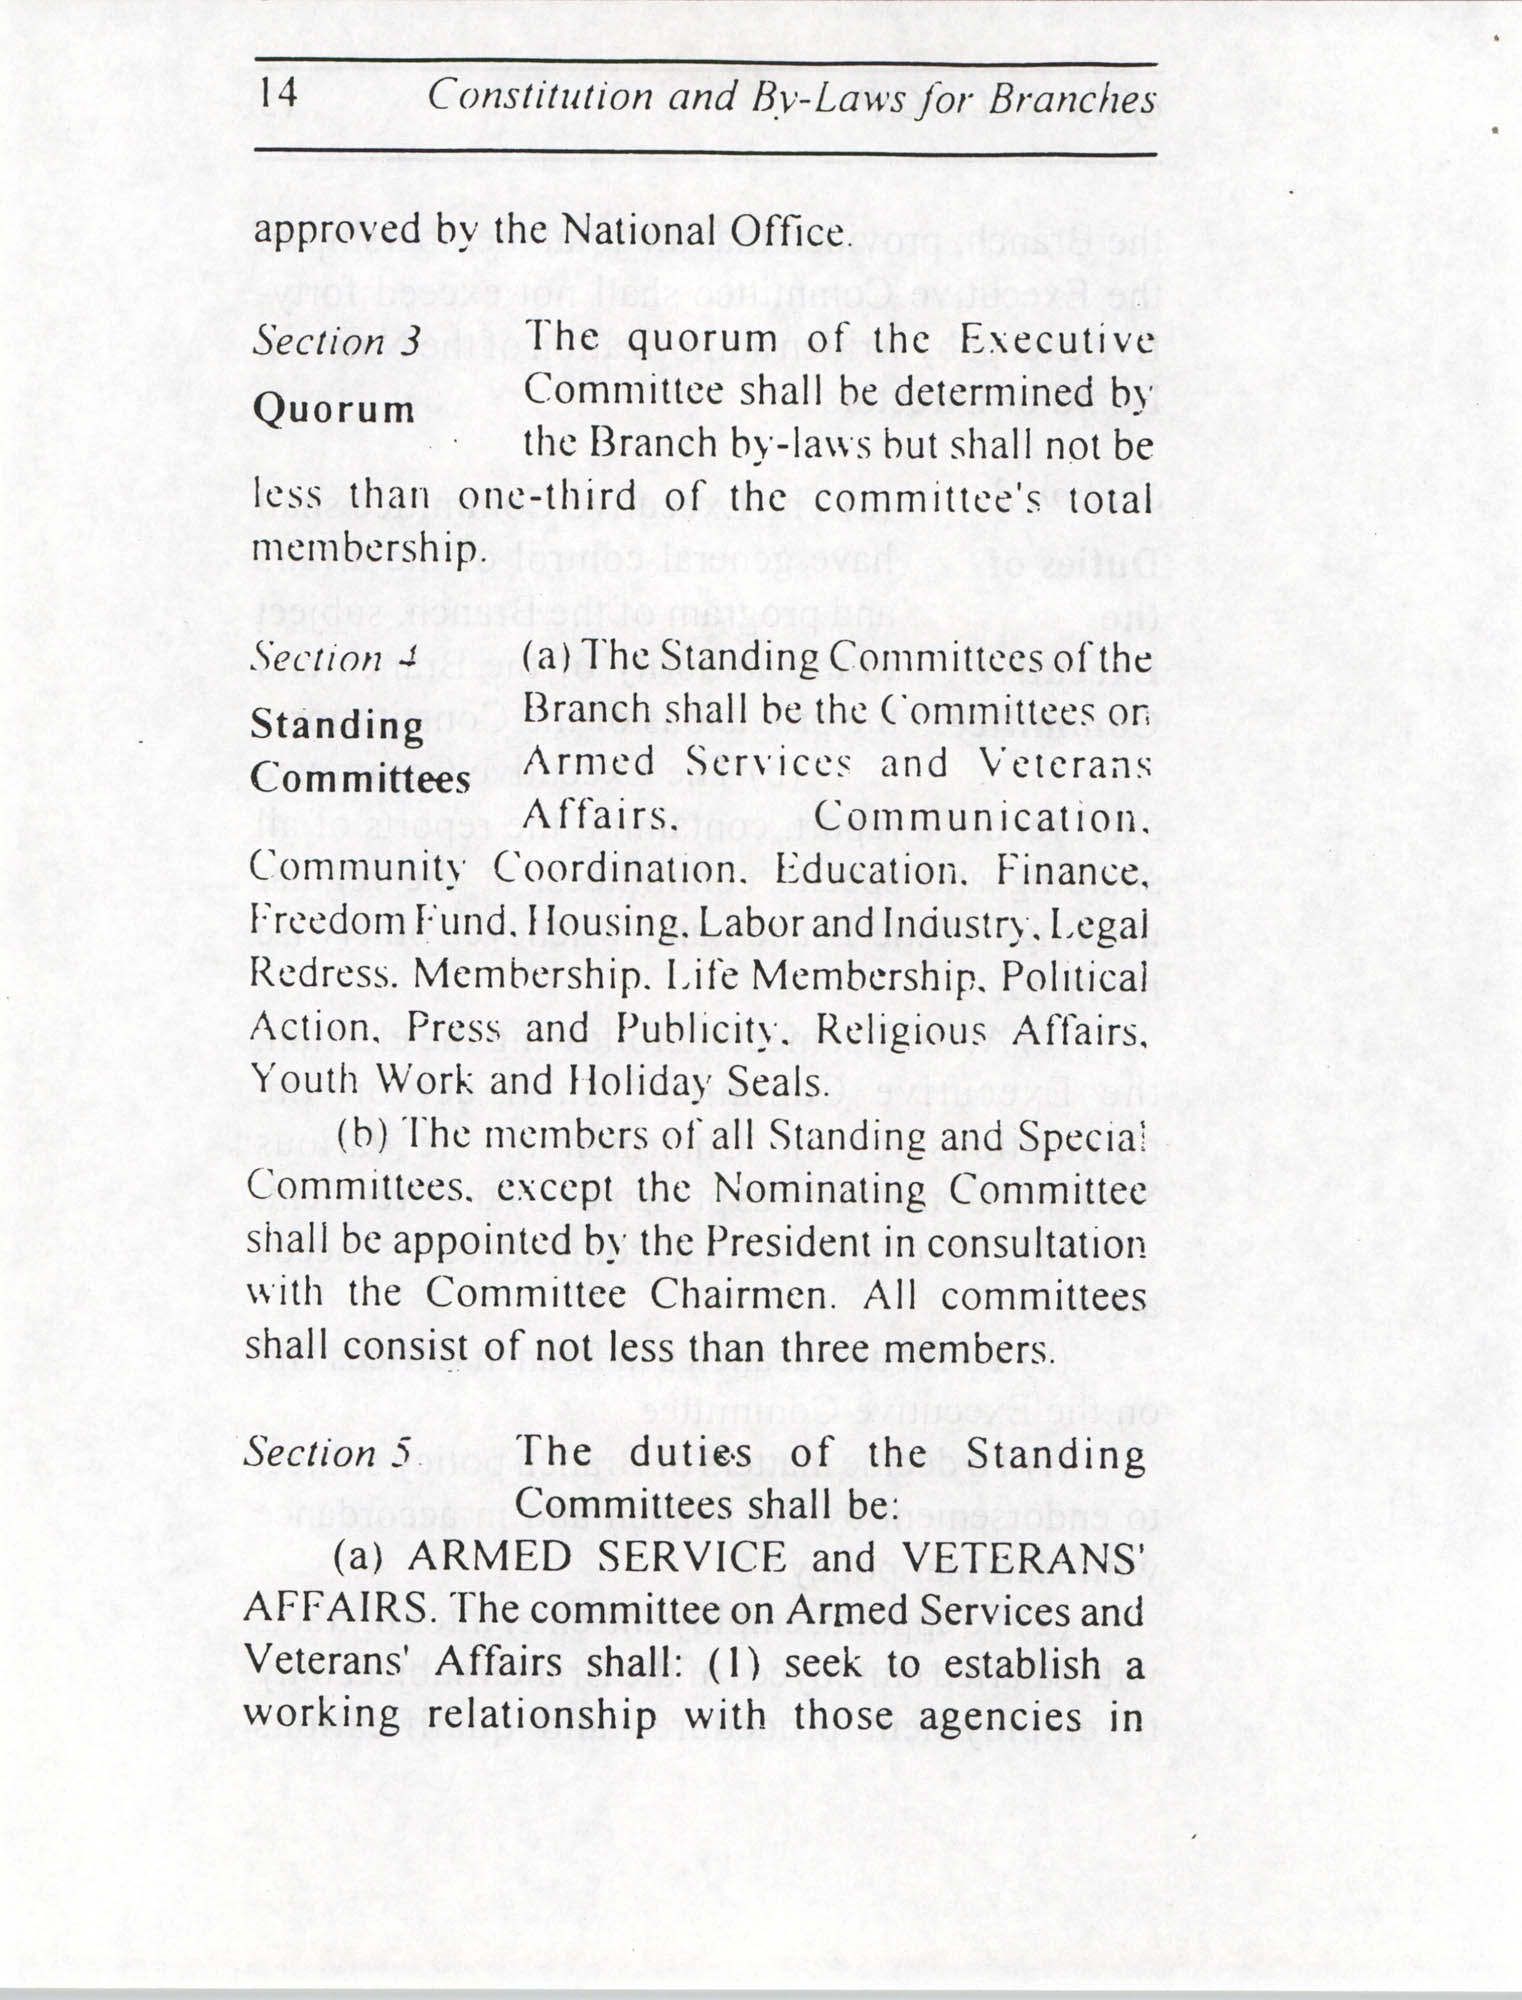 Constitution and By-Laws for Branches of the NAACP, July 1994, Page 14